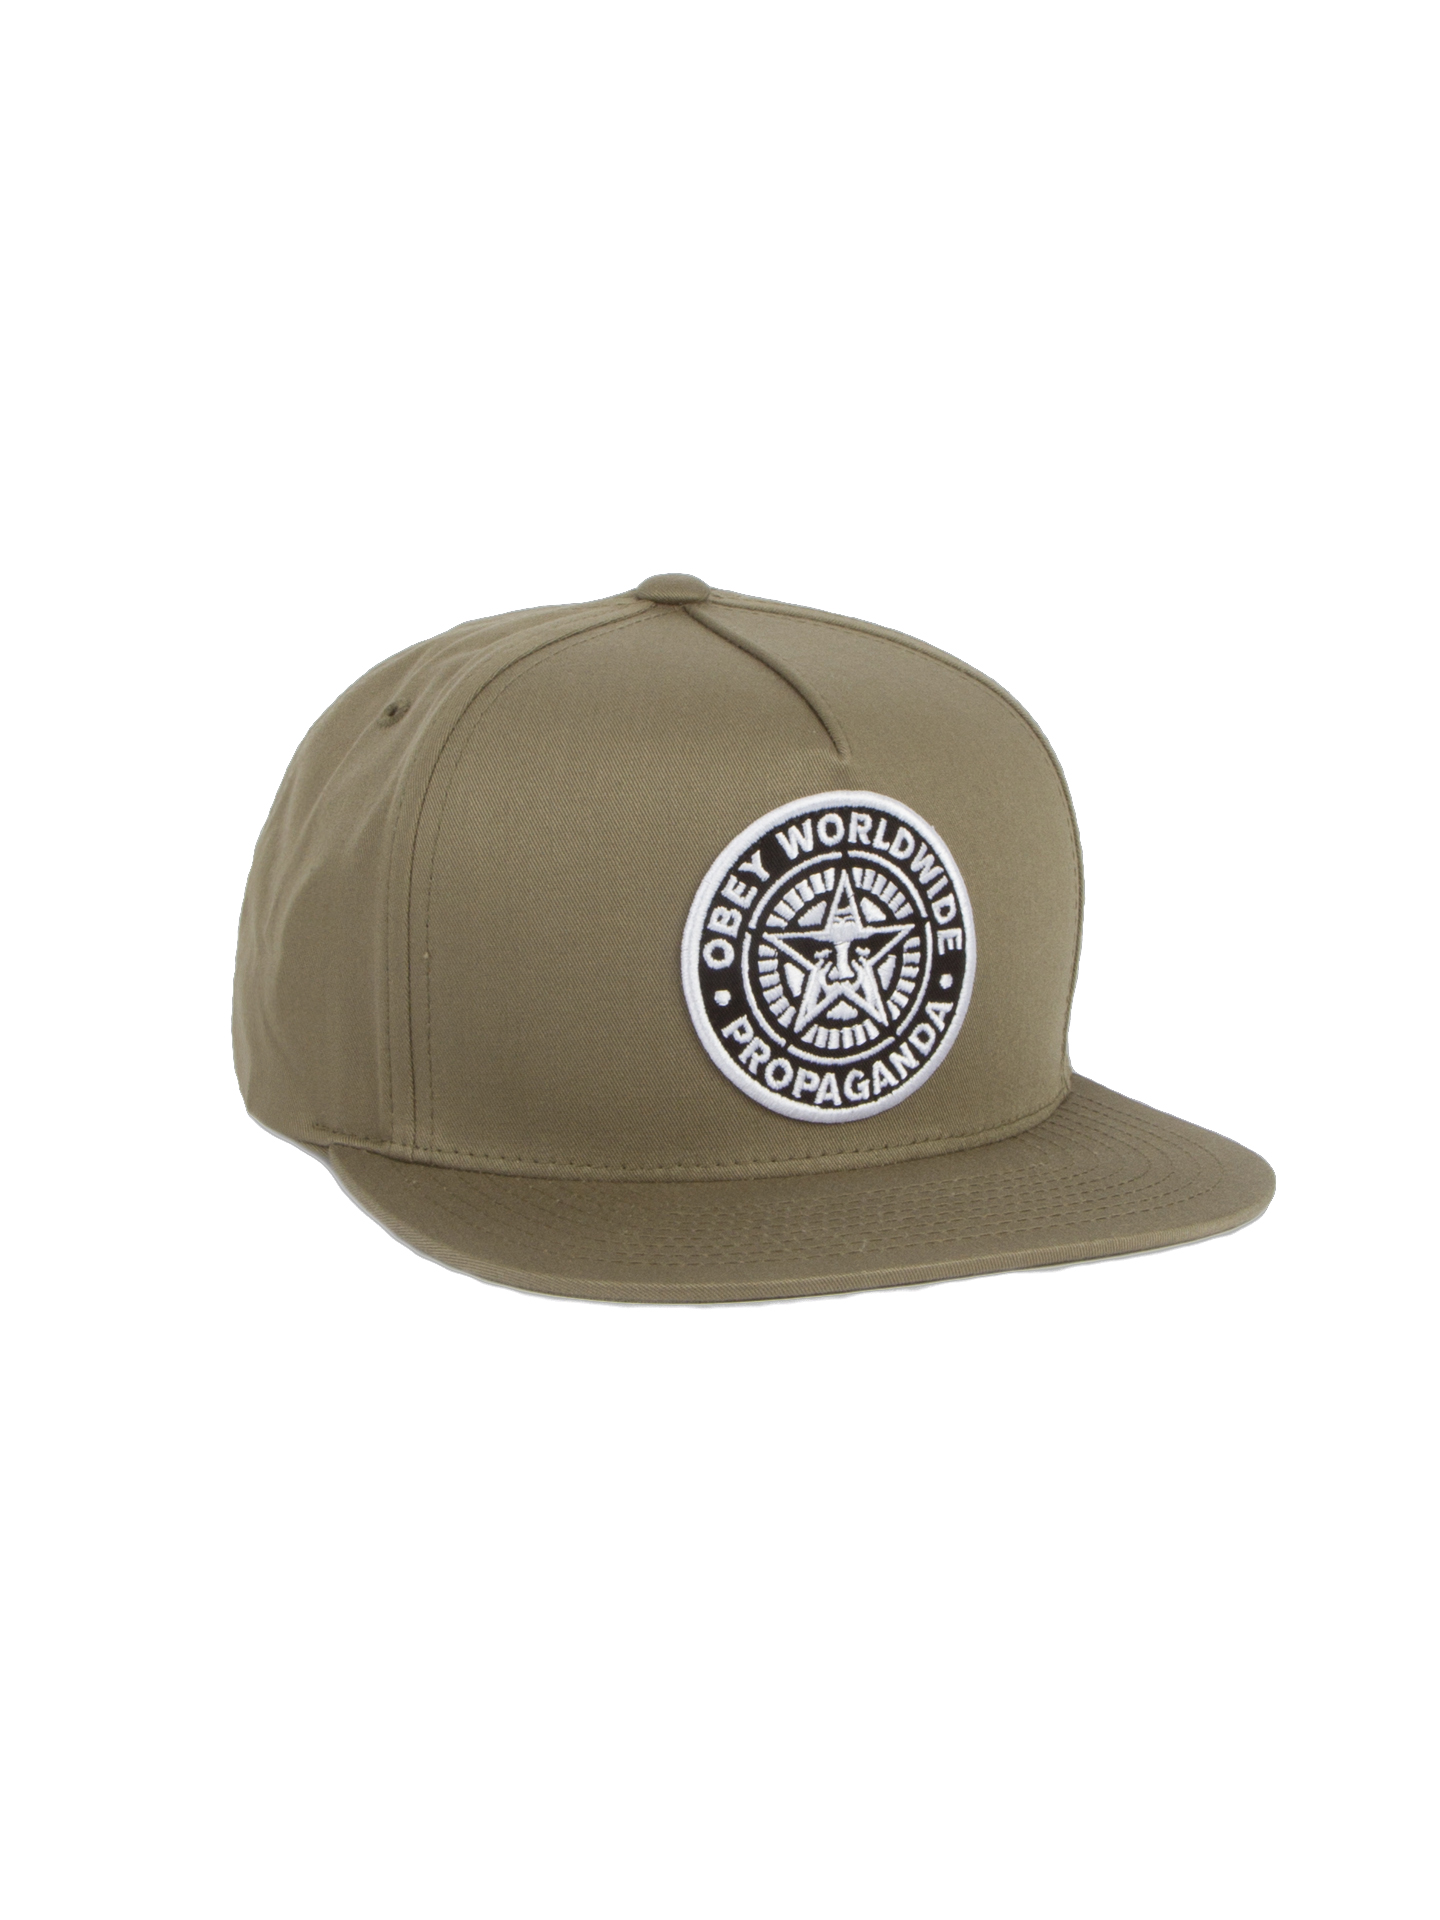 a5866eaa44cbc Classic Patch Snapback Hat - Obey Clothing UK